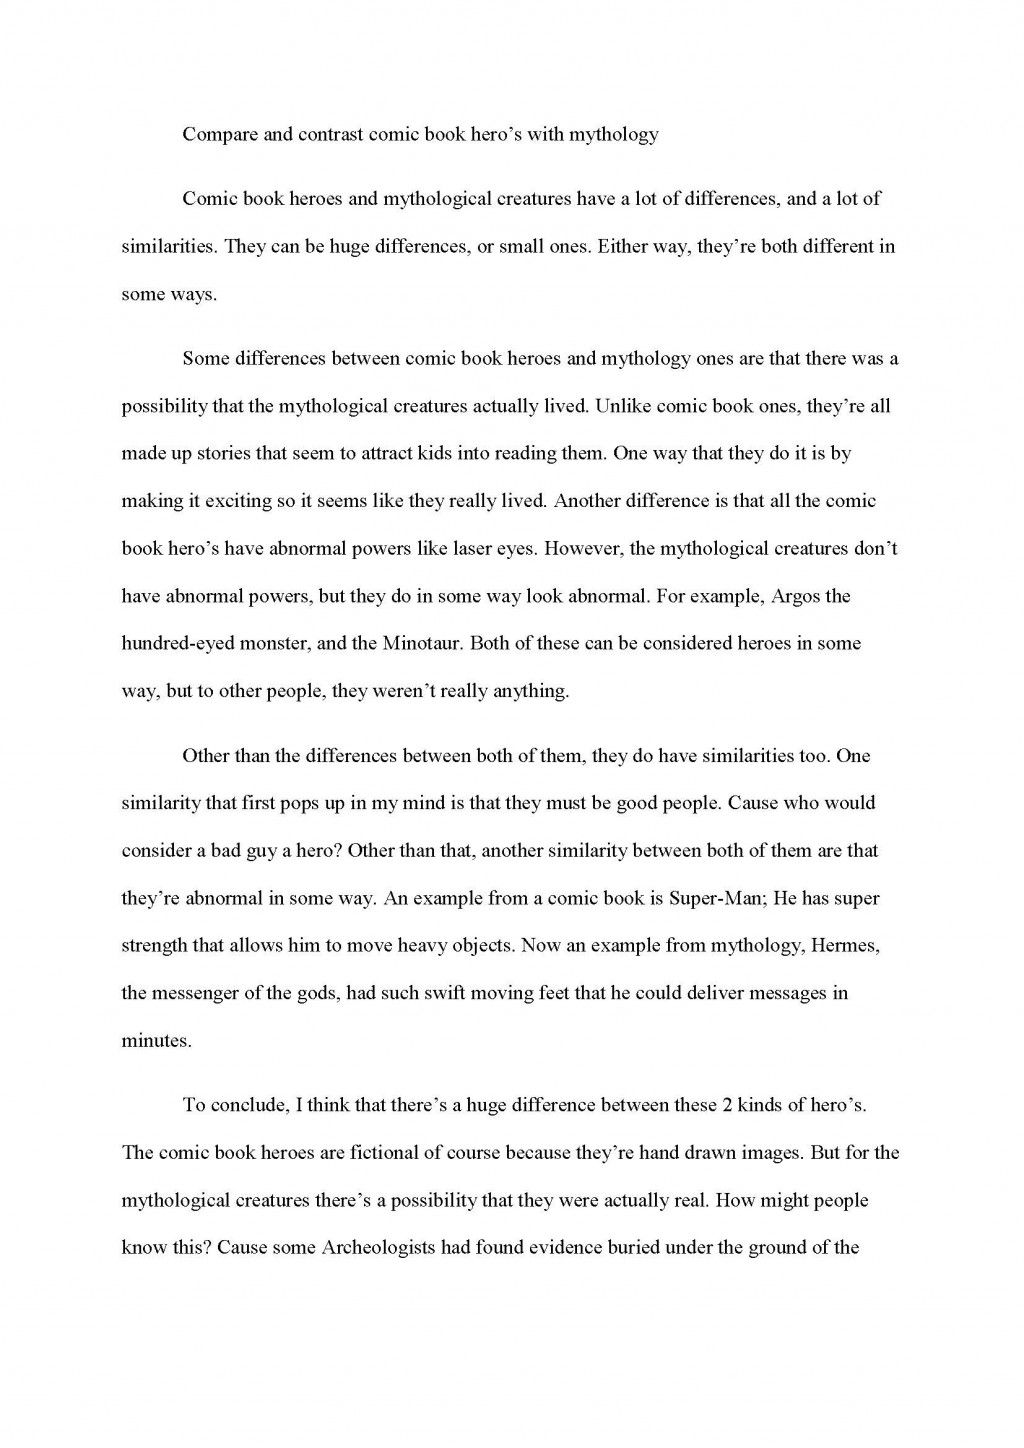 004 Conclusion For Compare And Contrast Essay Example Awesome How To Write A Paragraph Examples Large